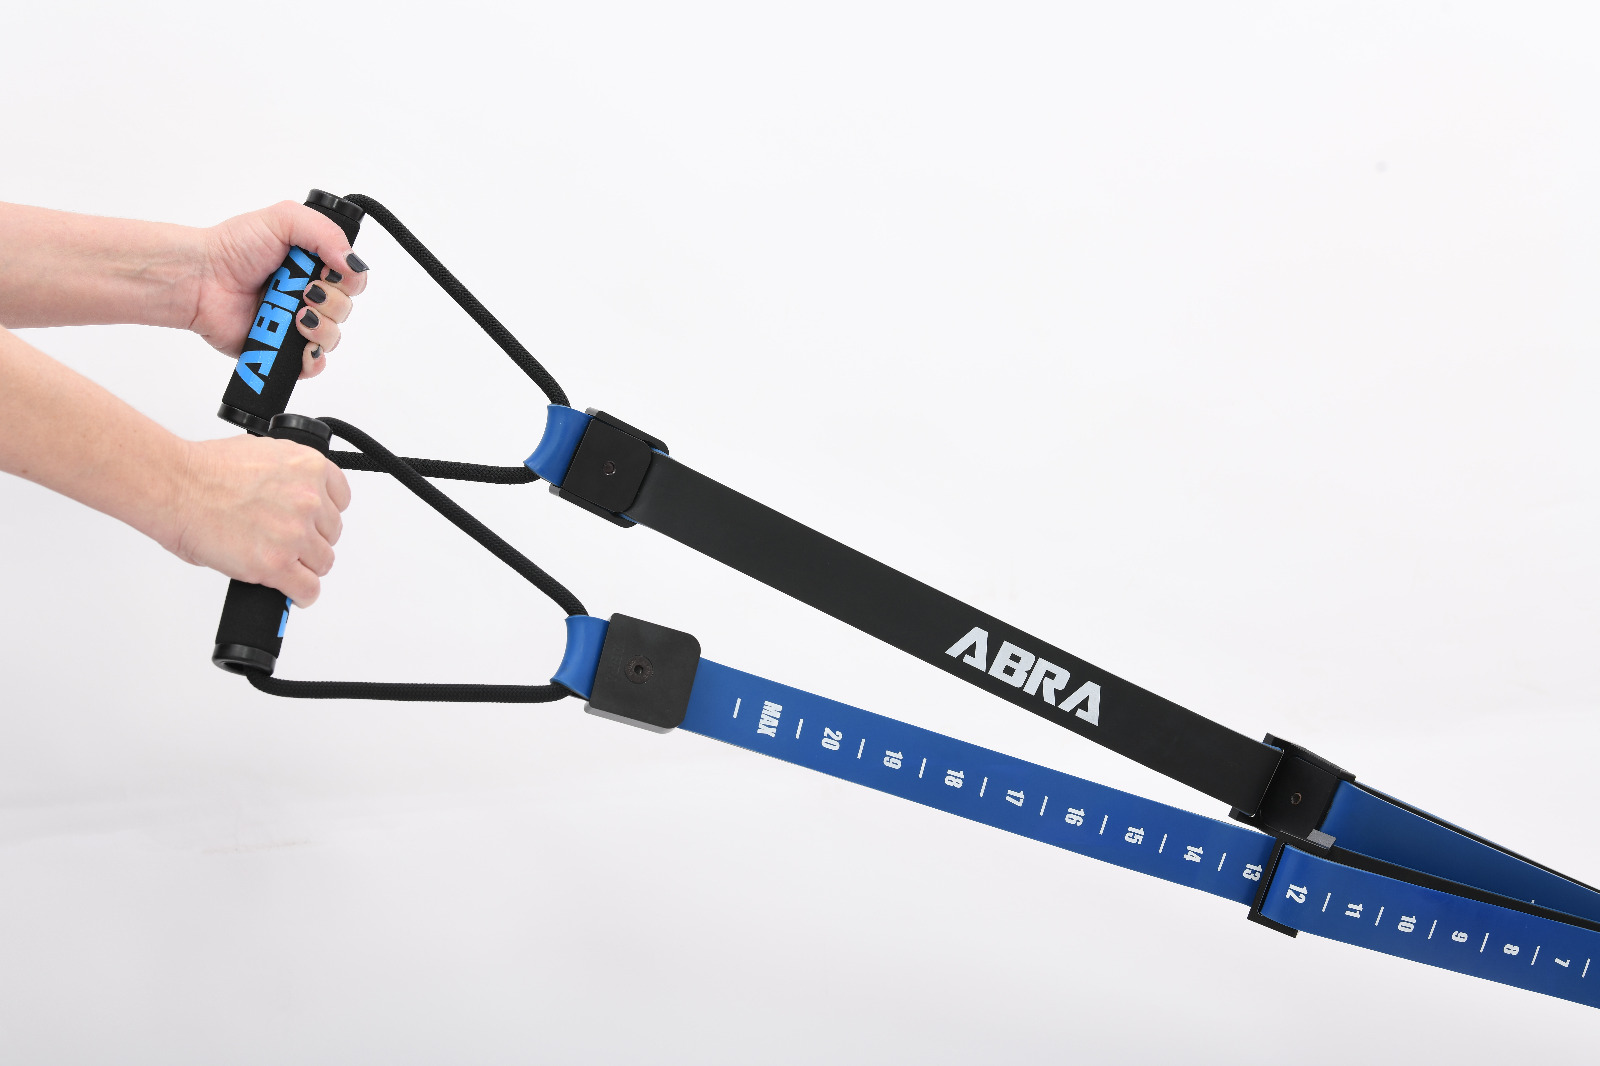 Abra Adjustable Resistance Hand